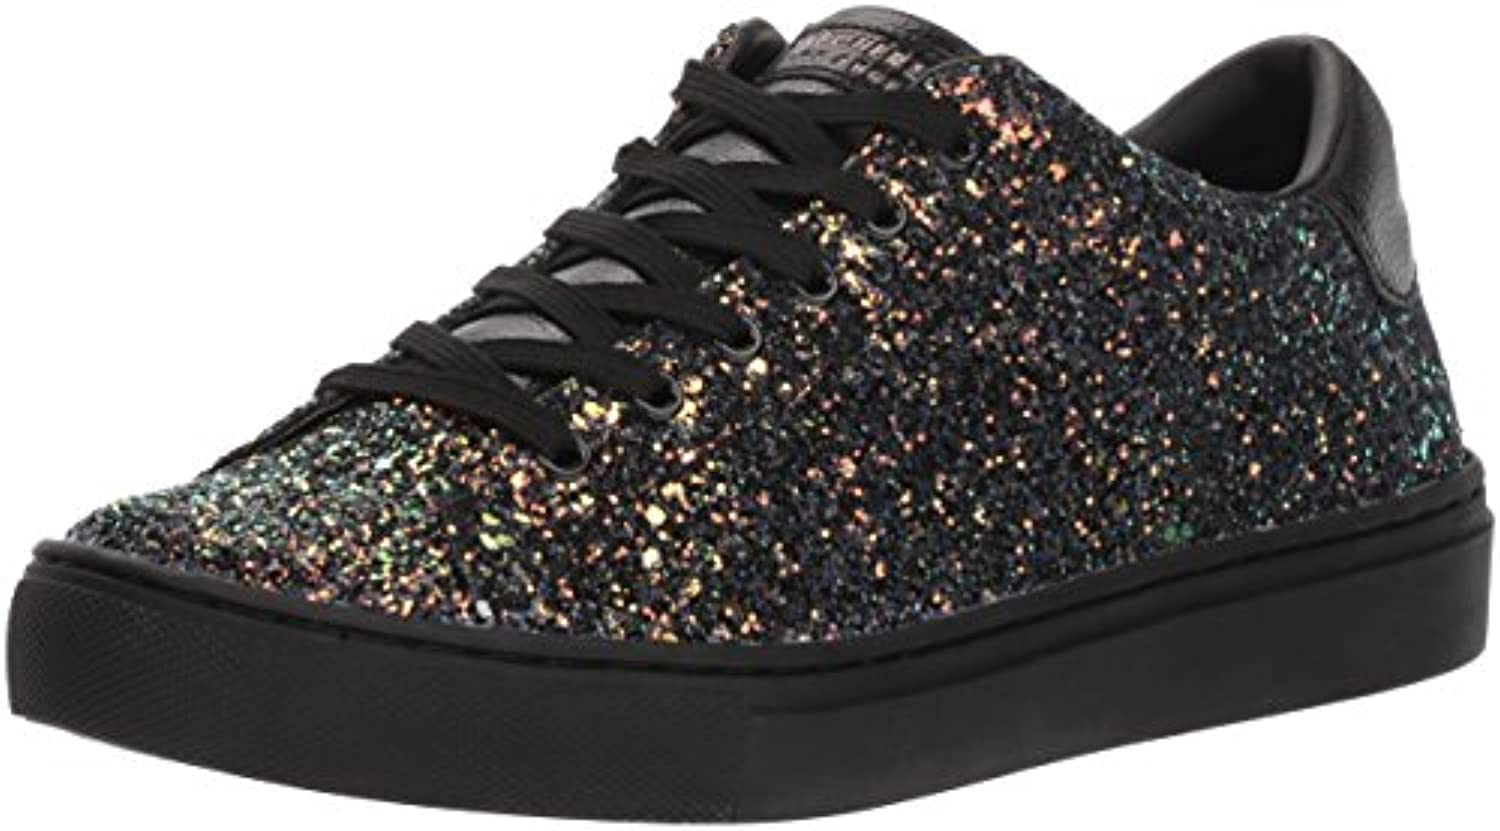 Skechers Side Street-Awesome Sauce, Zapatillas para Mujer